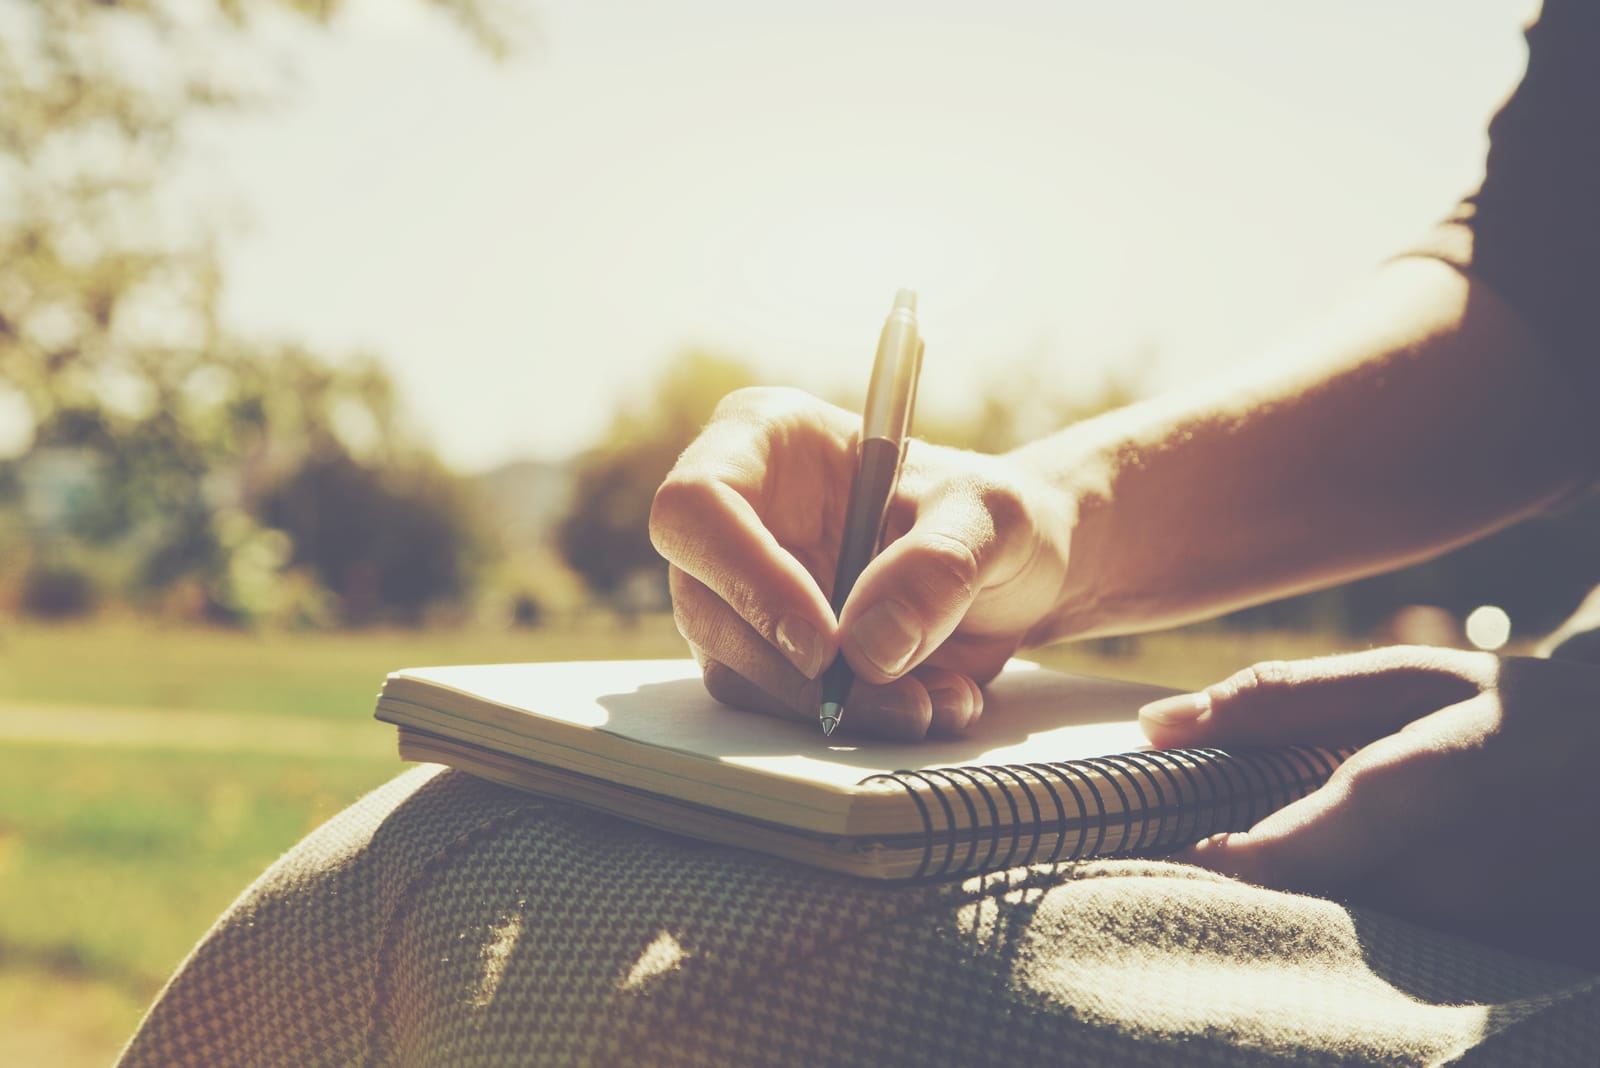 a woman is sitting in the park and writing something in a notebook